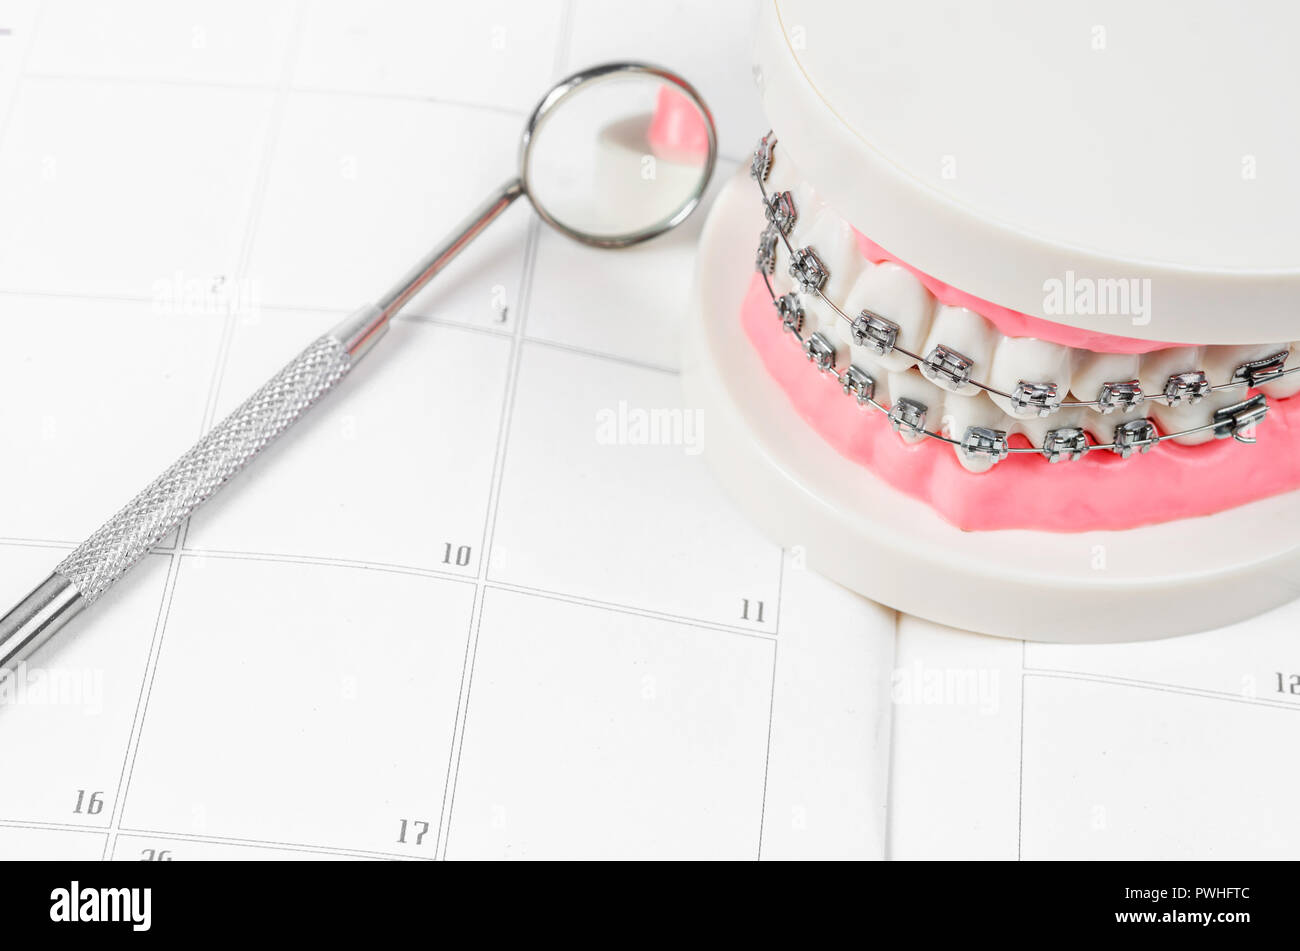 Tooth model with metal wire dental braces on a calendar. Regular checkups are essential to oral health - Stock Image